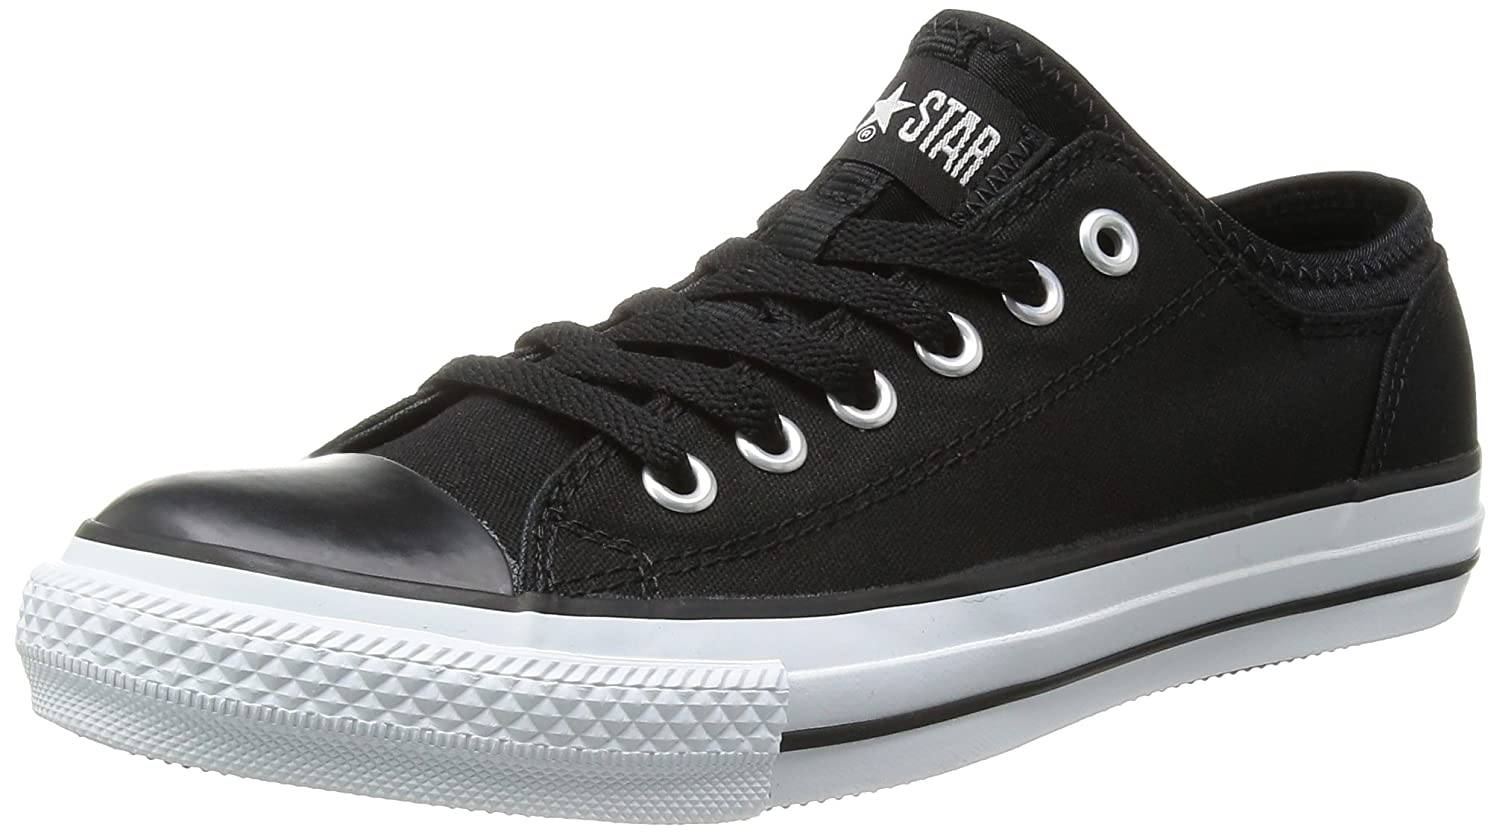 Amazon.co.jp: [コンバース] CONVERSE CONVERSE ALL STAR NEOPRE OX: シューズ&バッグ:通販